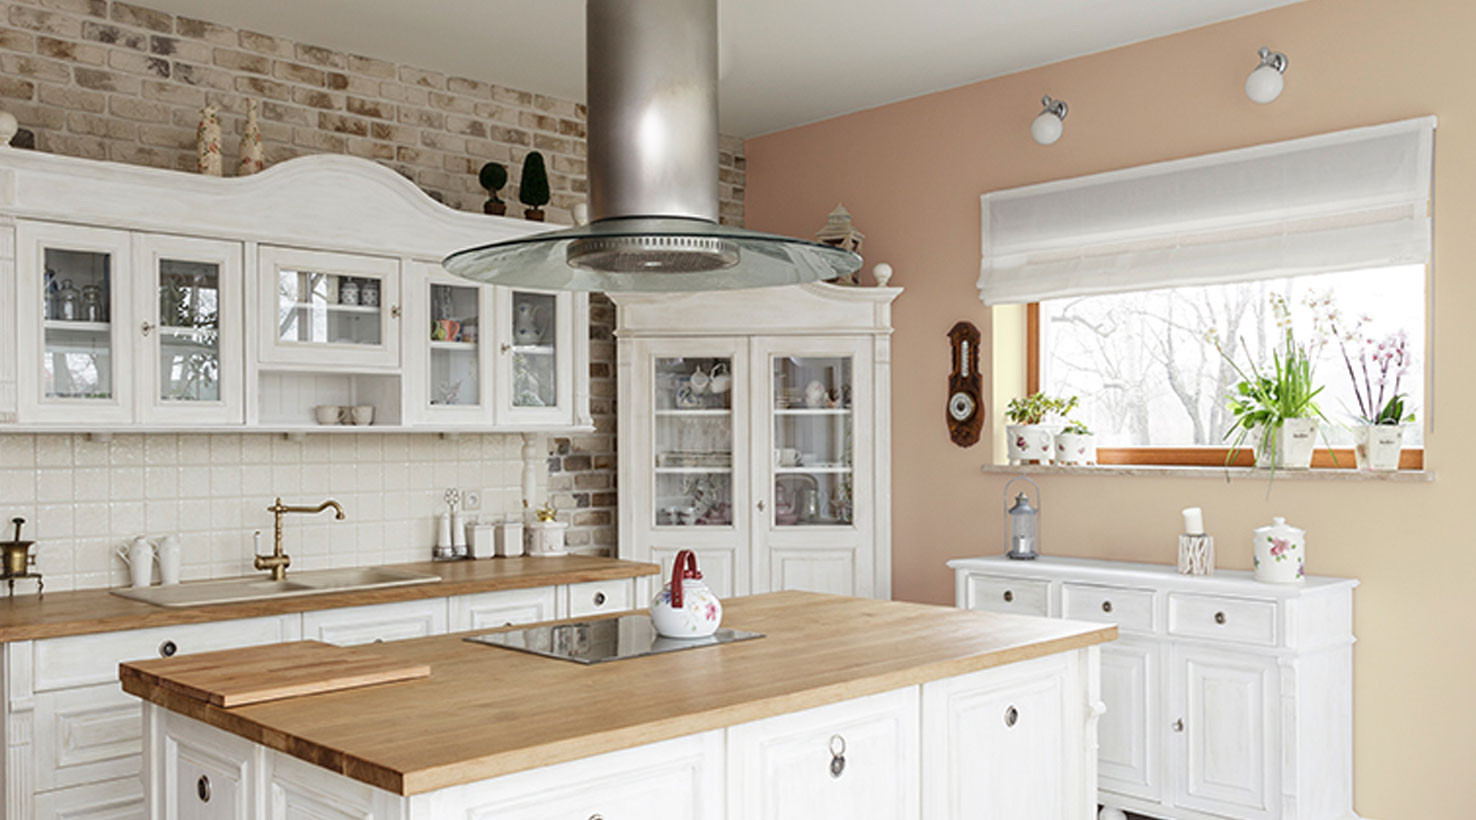 Best ideas about Paint Colors For Kitchen . Save or Pin Kitchen Paint Color Ideas Inspiration Gallery Now.